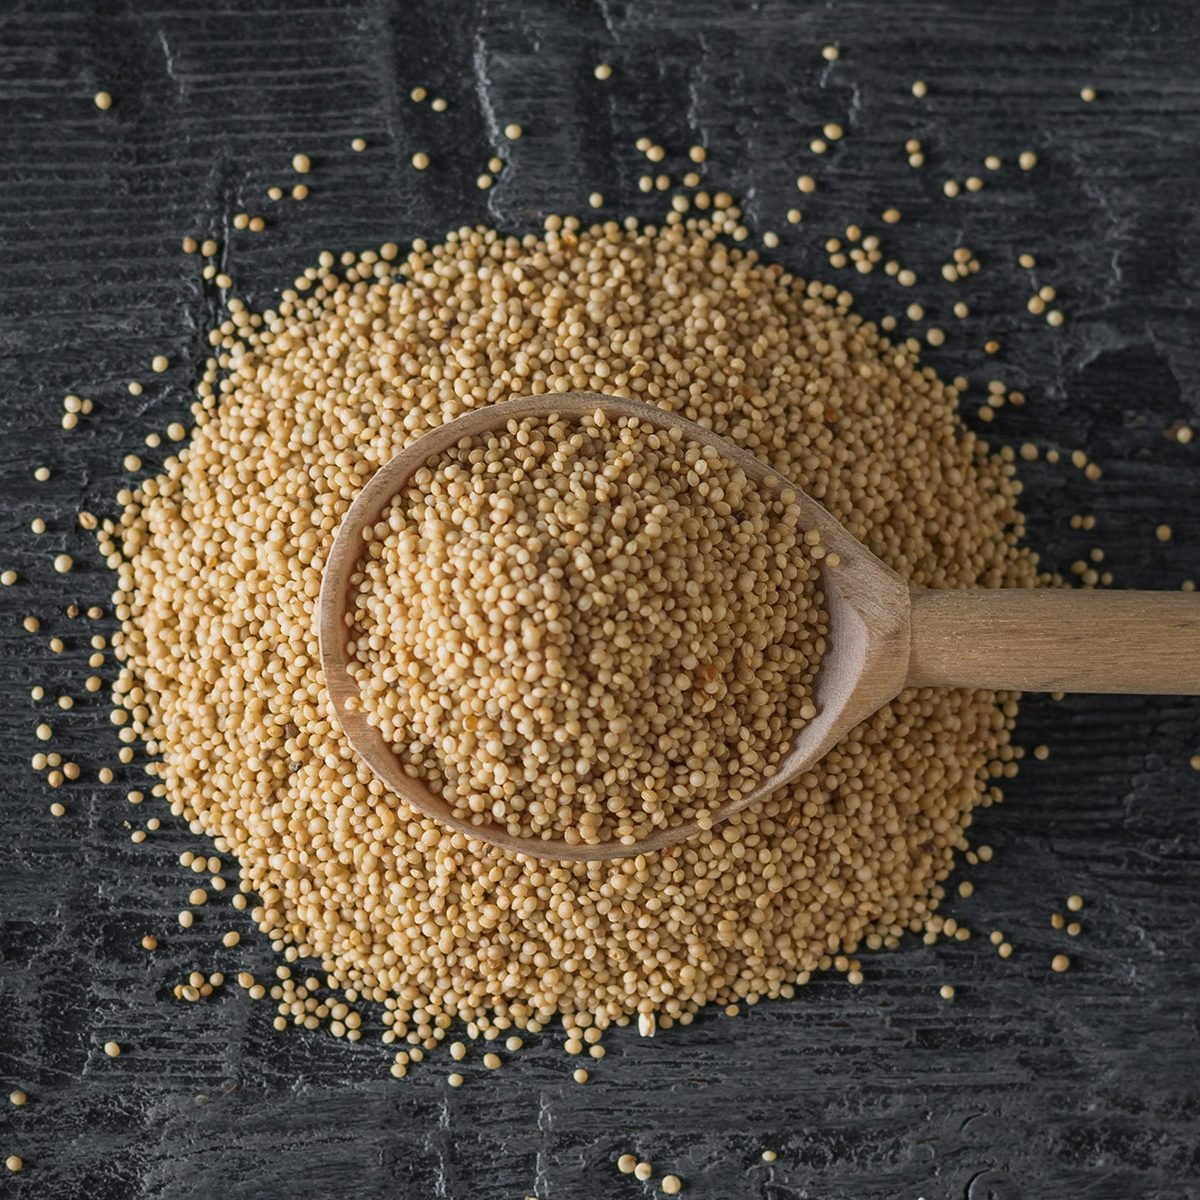 A pile of amaranth seeds and a wooden spoon on a dark wooden table.